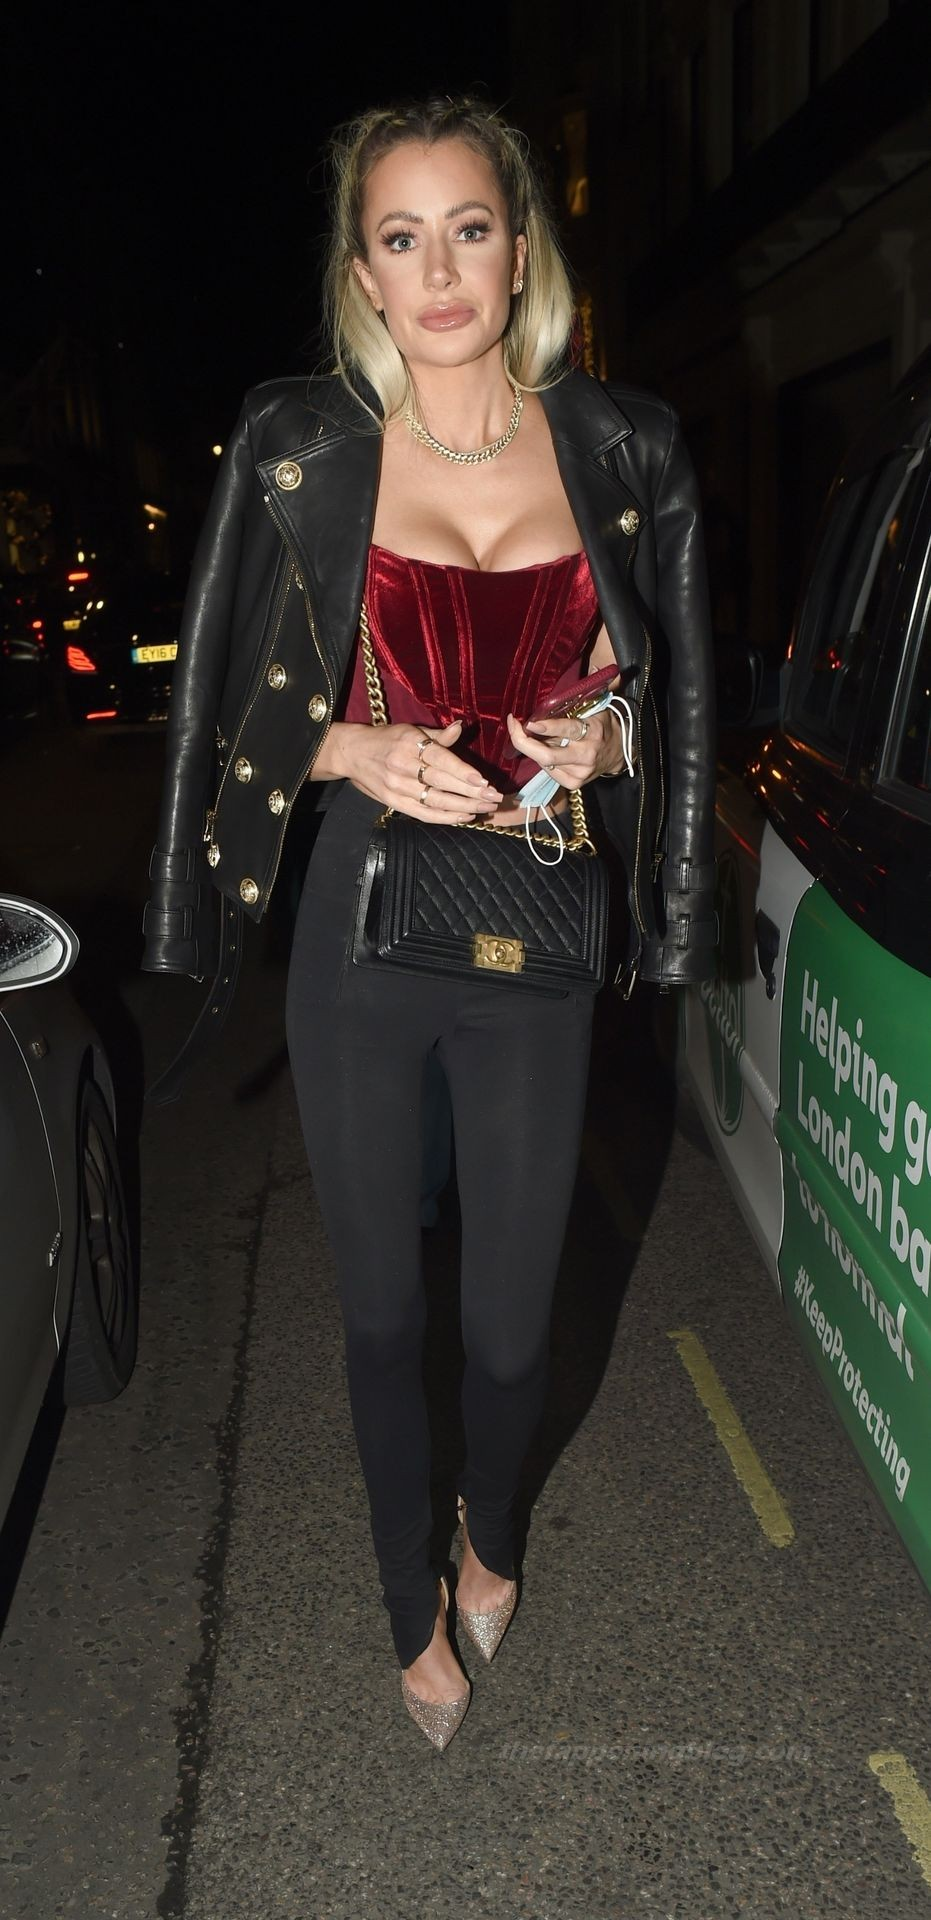 Olivia Attwood Shows Off Her Cleavage in London (19 Photos)